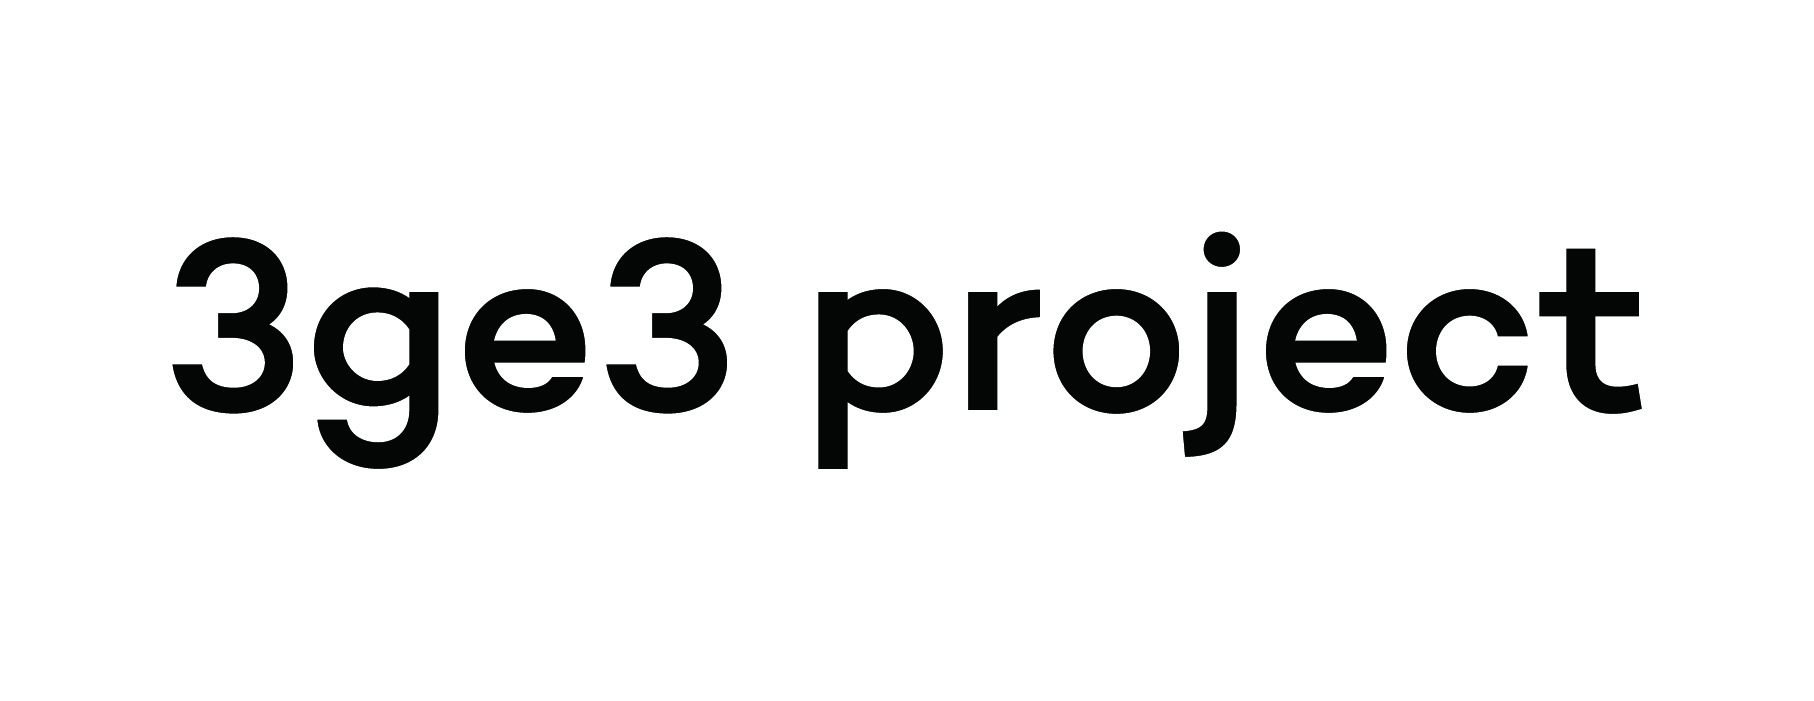 3ge3 project